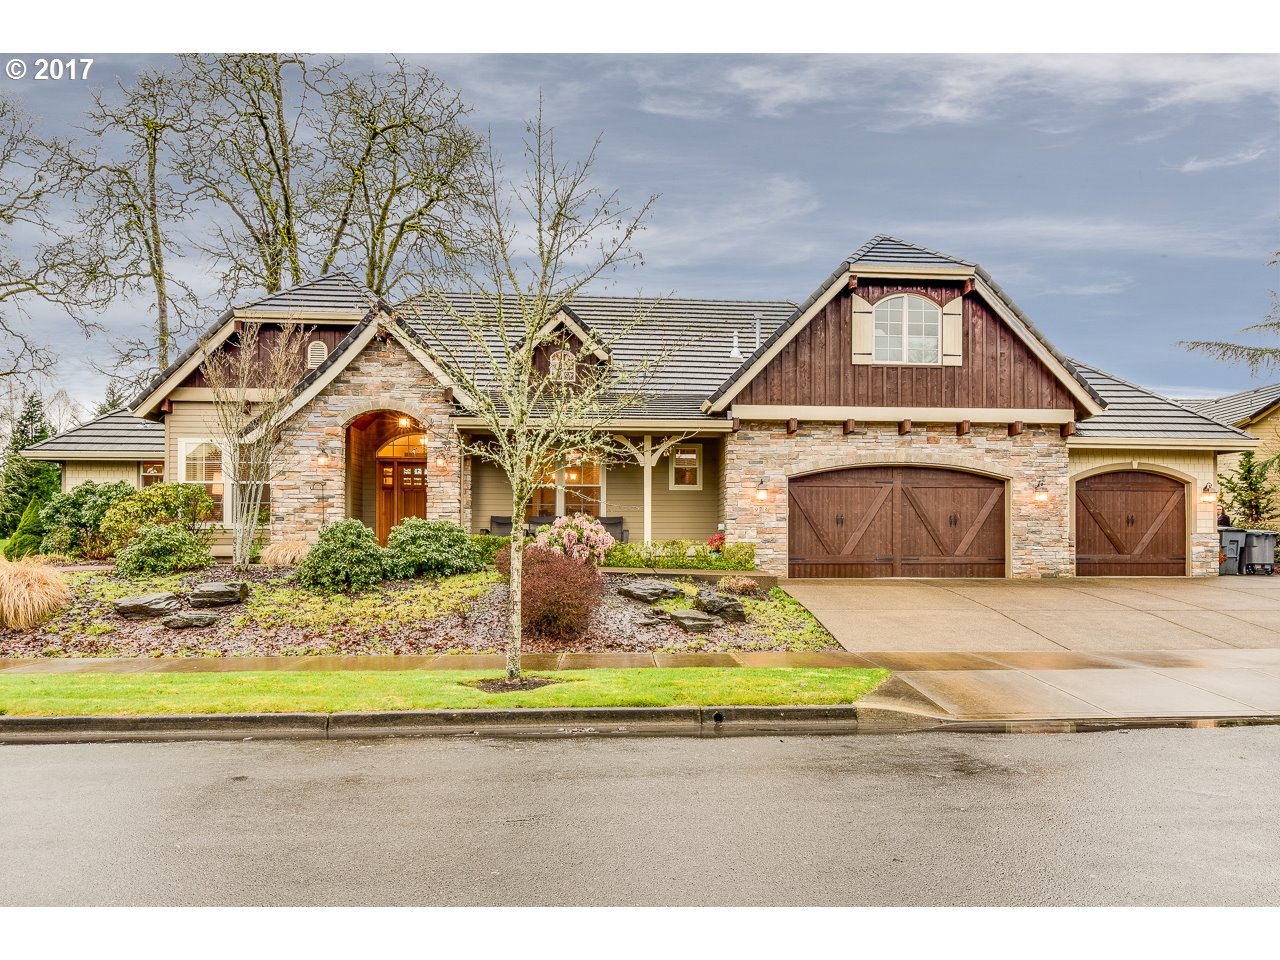 973 NW OAKMONT CT, McMinnville, OR 97128